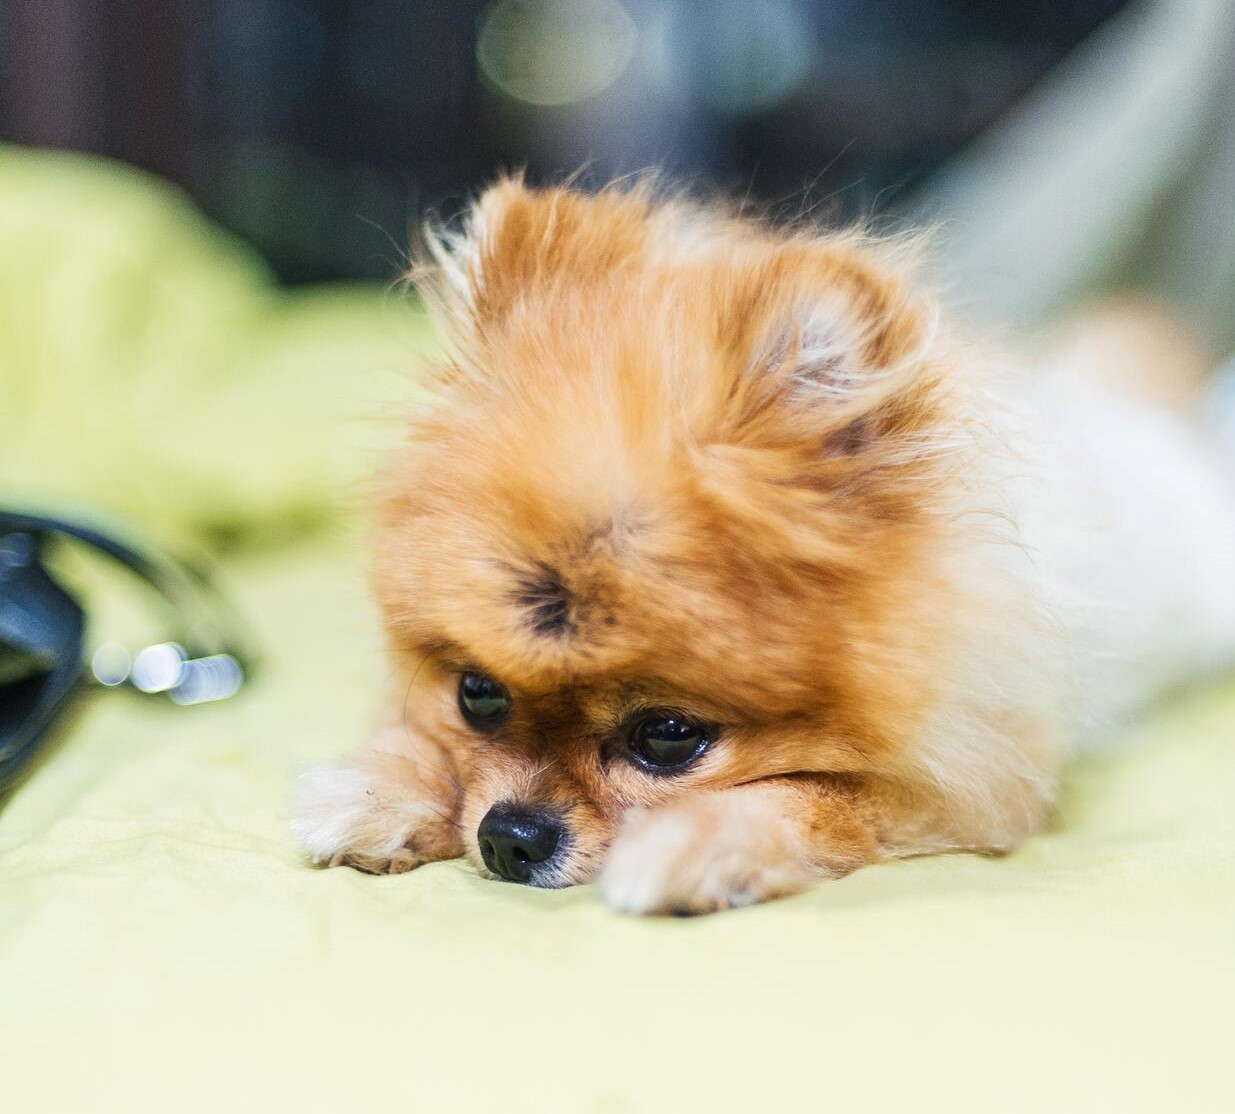 https://buttondoggrooming.com.au/wp-content/uploads/2020/06/Blog_Common-Skin_Cute-as-a-button-Dog-Grooming1157edited.jpg